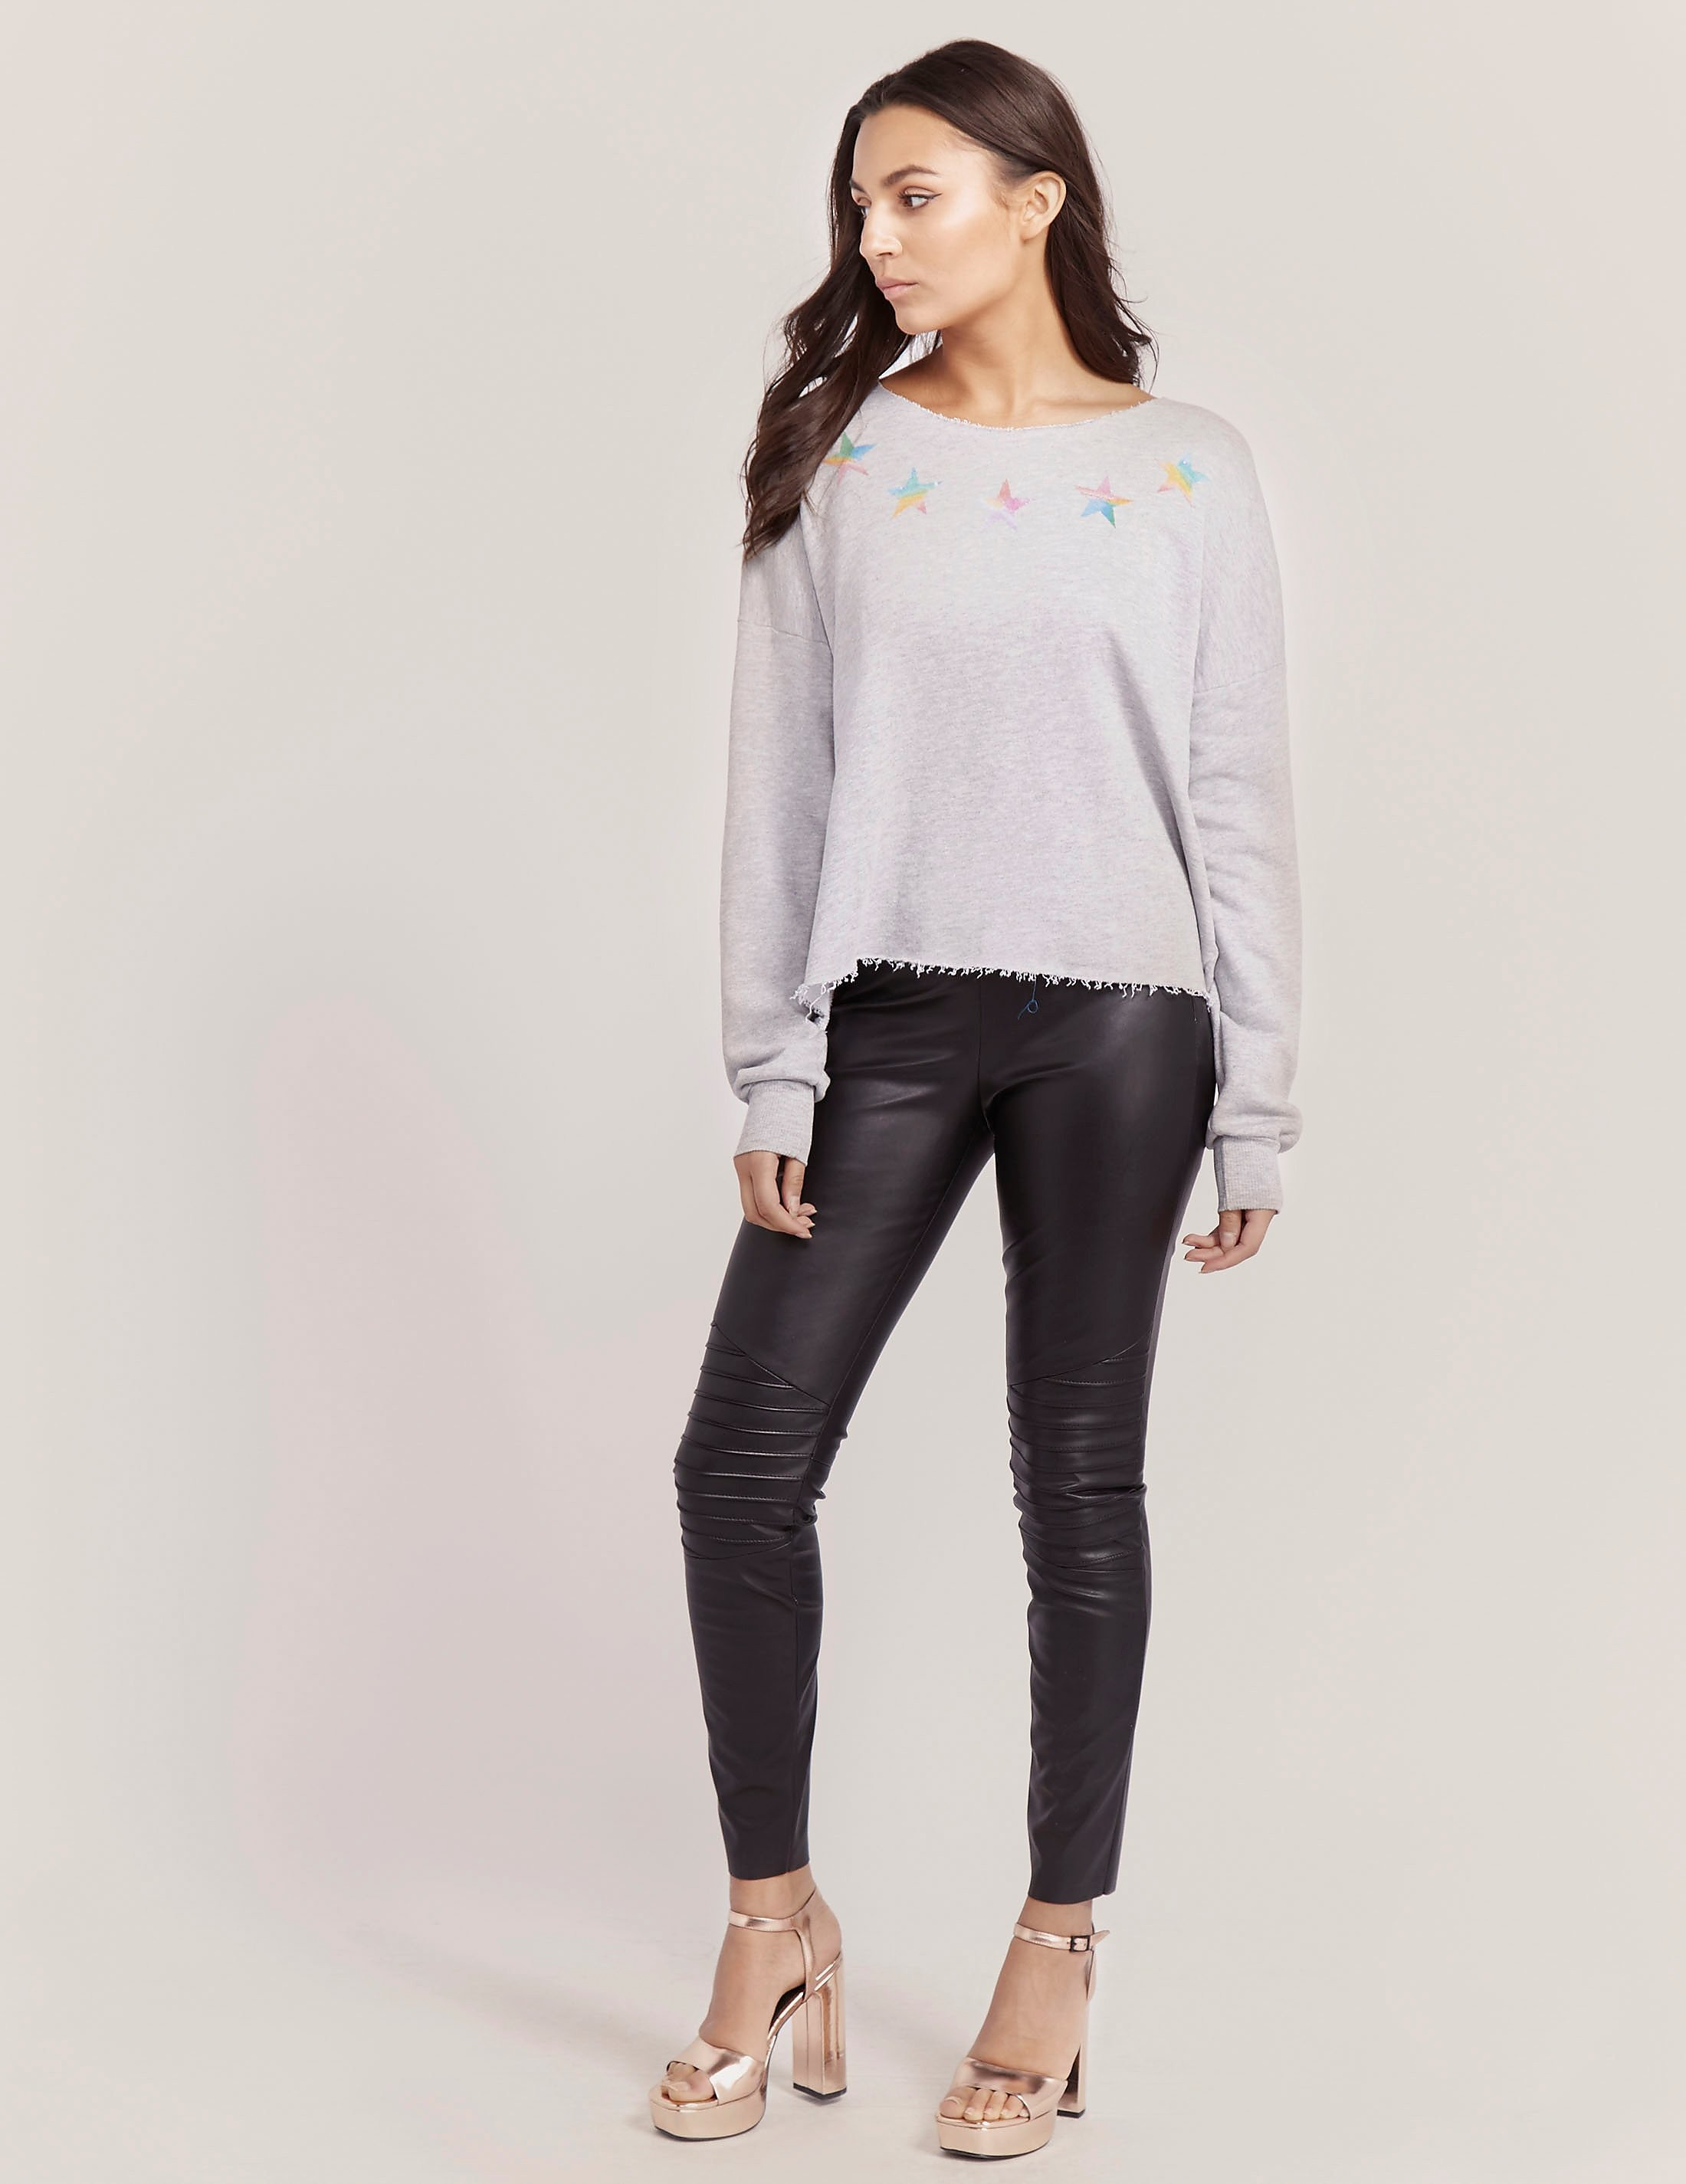 Wildfox Starry Eyed Sweatshirt